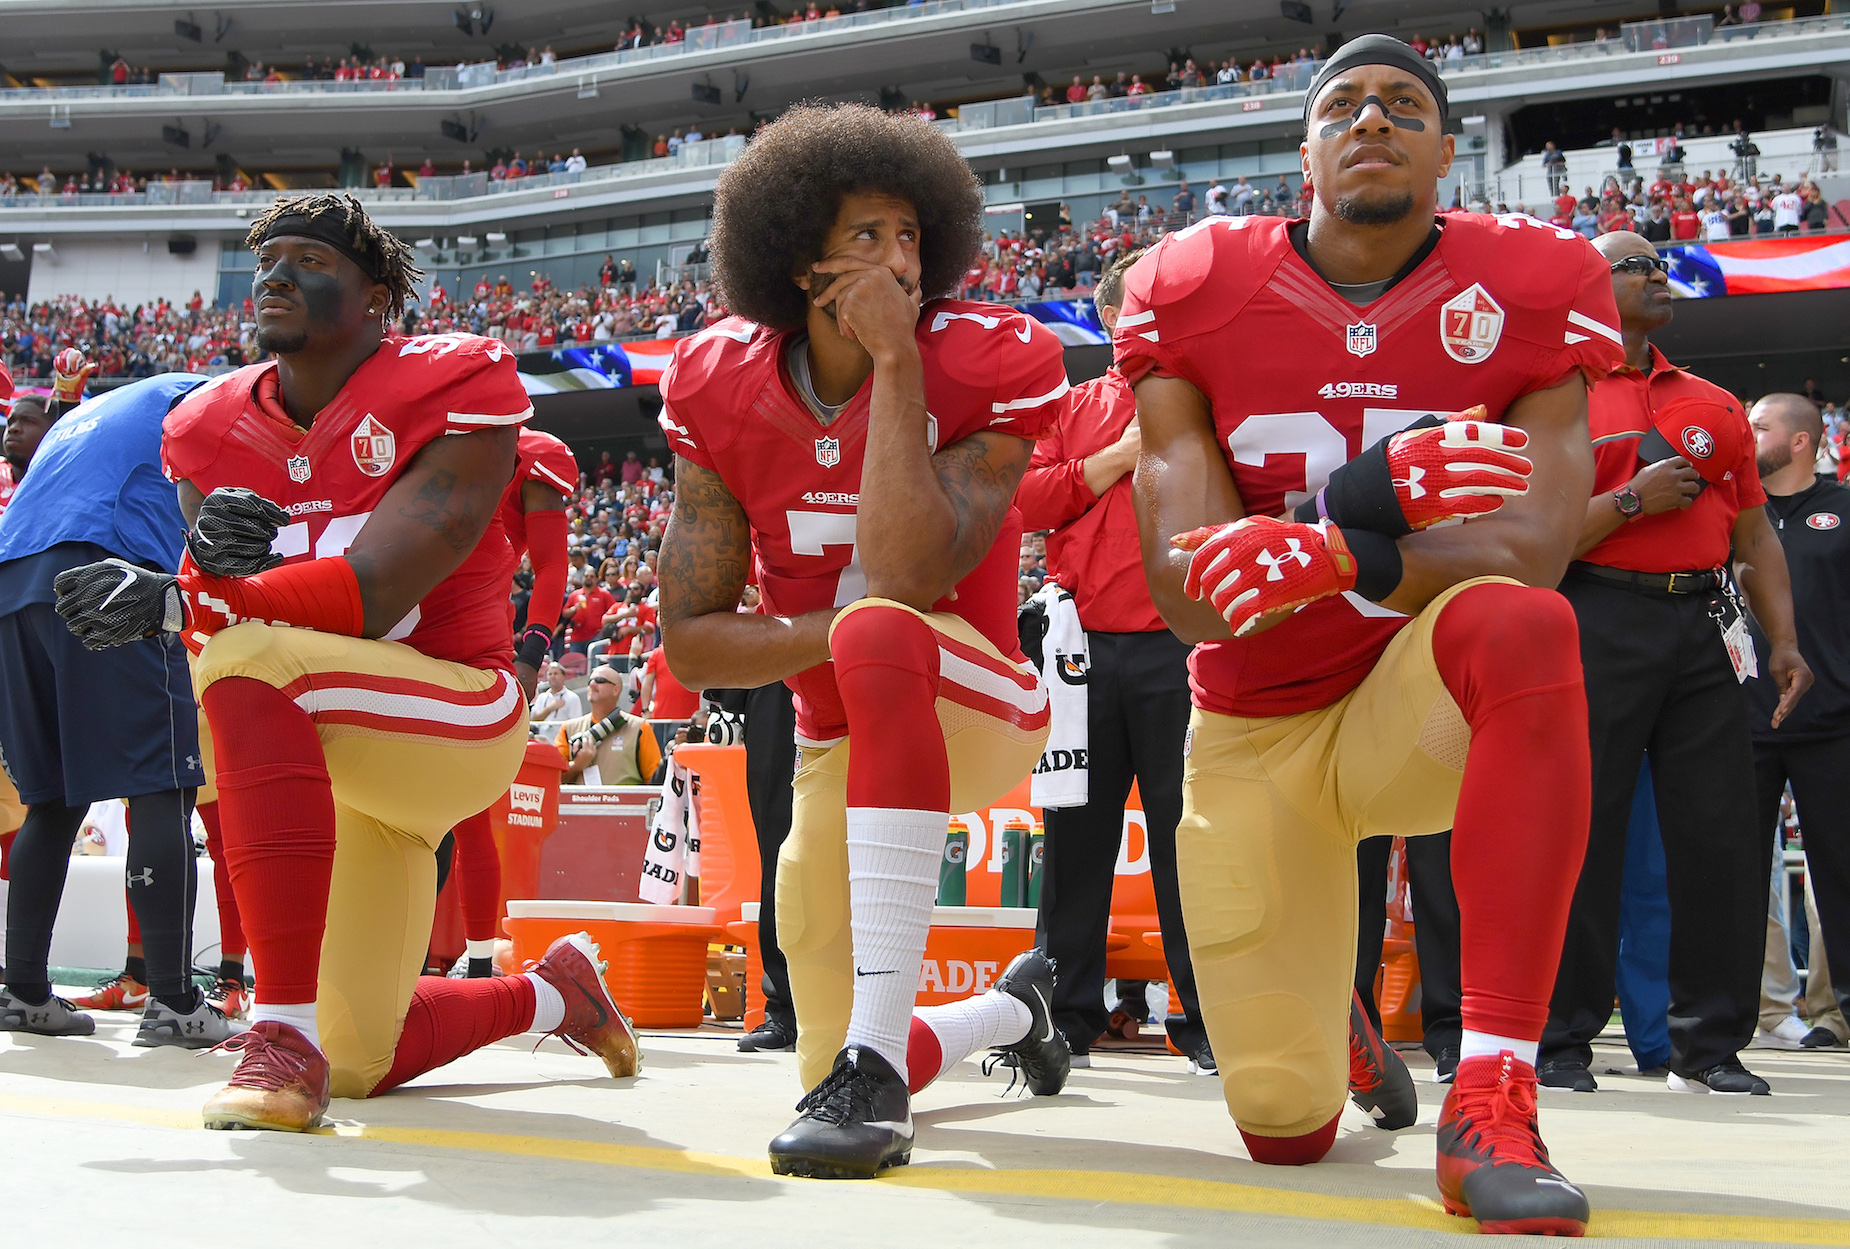 Colin Kaepernick called the NFL's social justice initiatives 'propaganda' in a tweet.